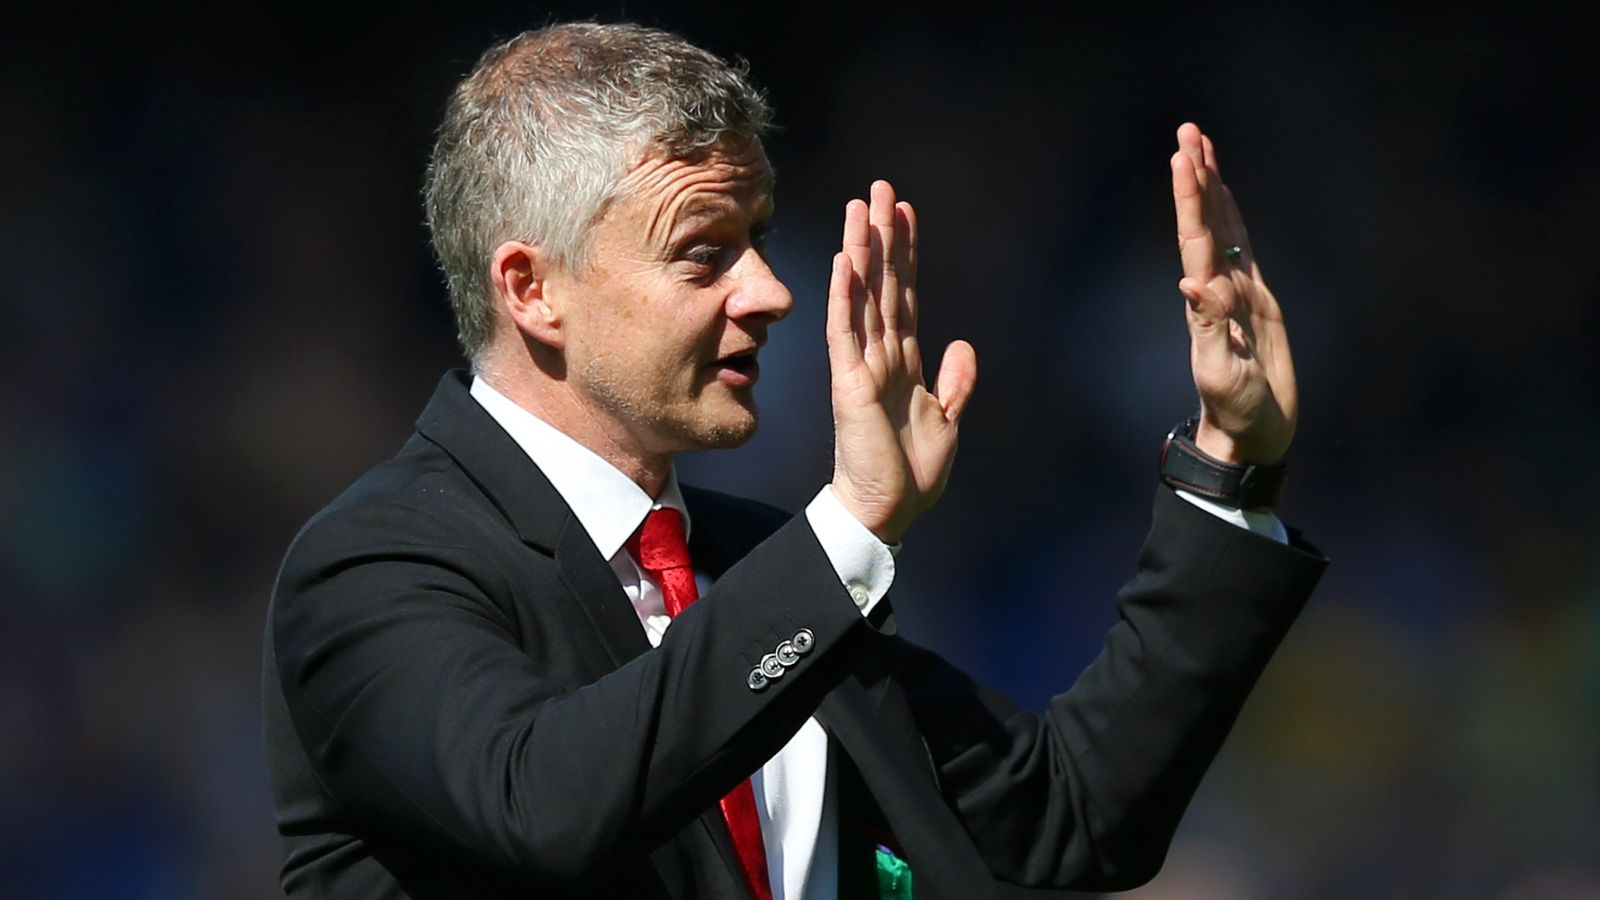 Ole Gunnar Solskjaer says Manchester United will not 'capitulate' against Everton again